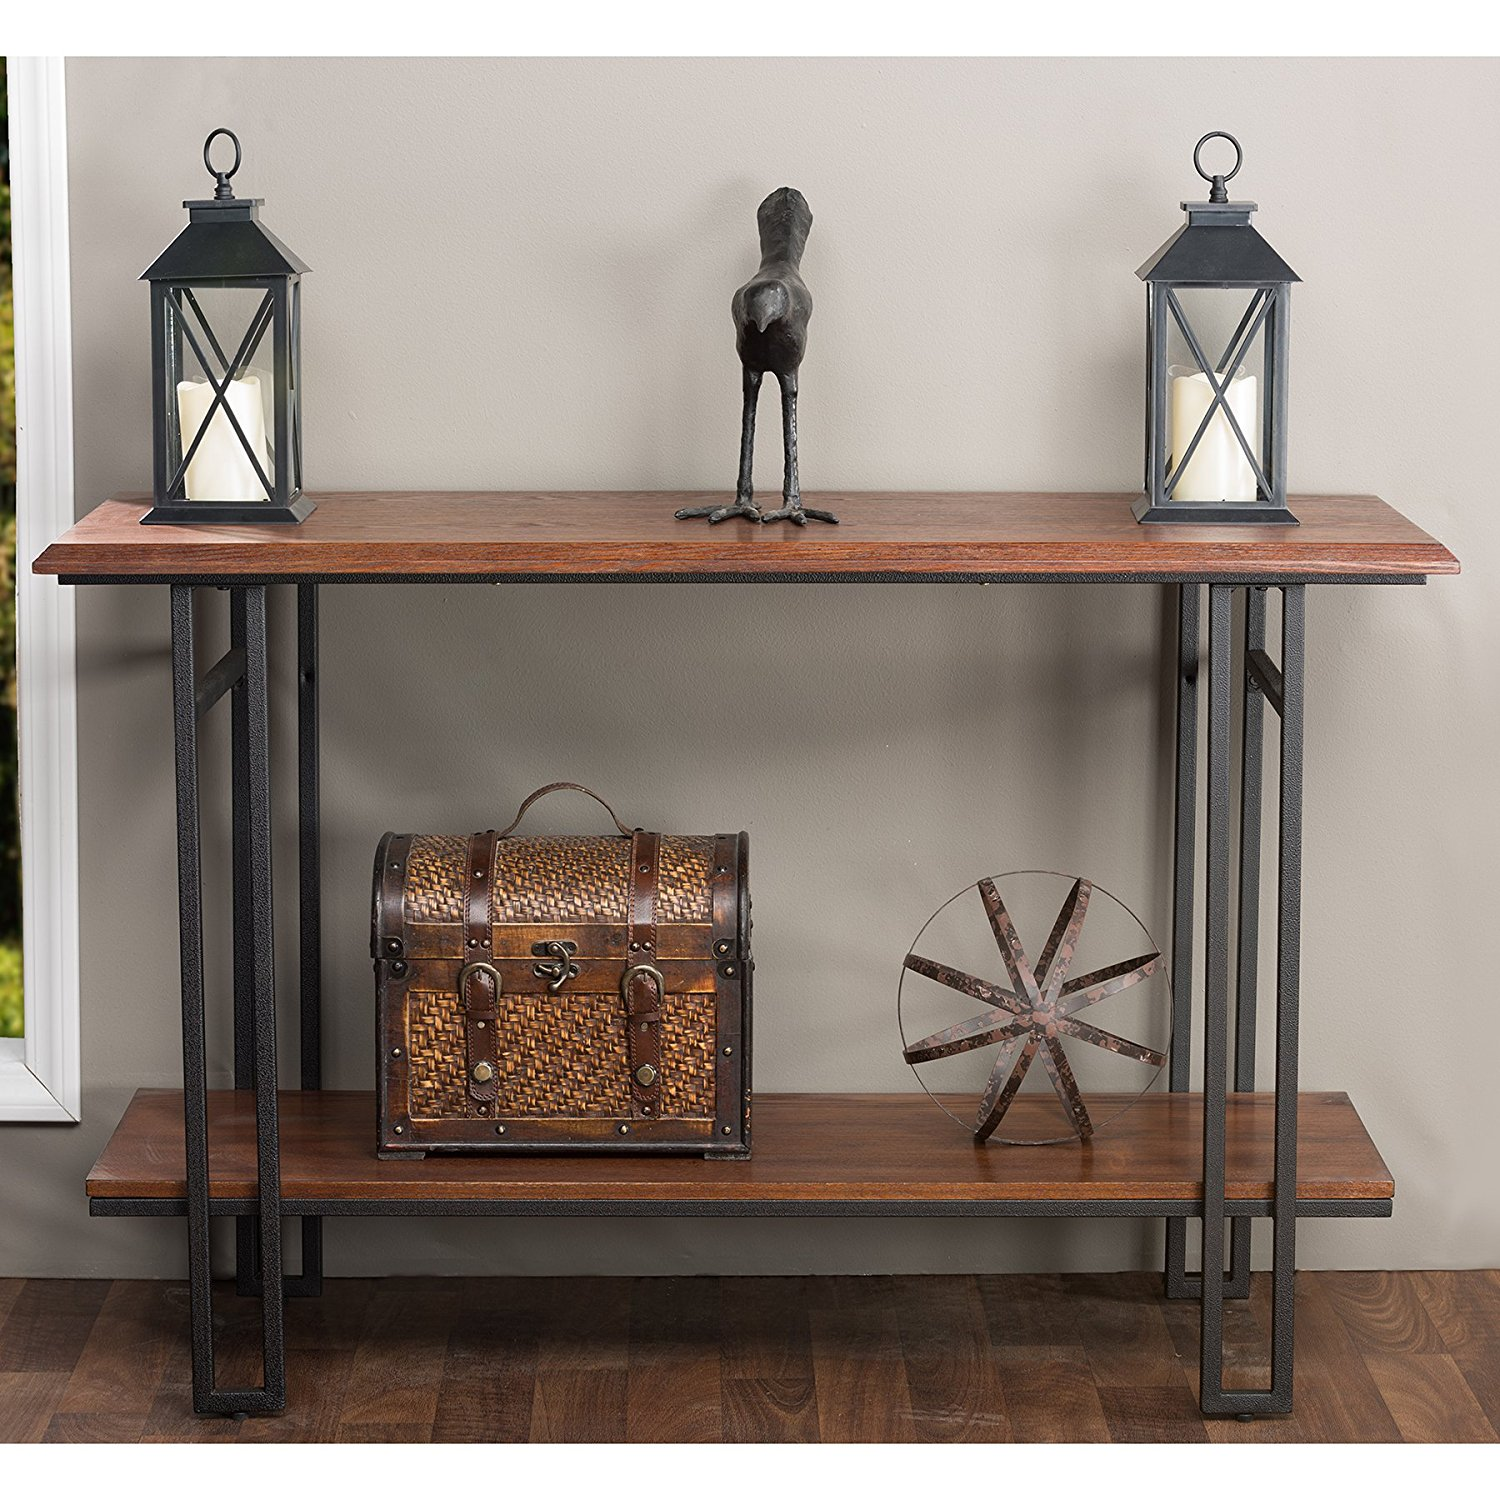 wood metal console table oak perfect decorate decor antique accent large kitchen clocks plastic outdoor folding side dining room black crystal lamp small glass garden square with